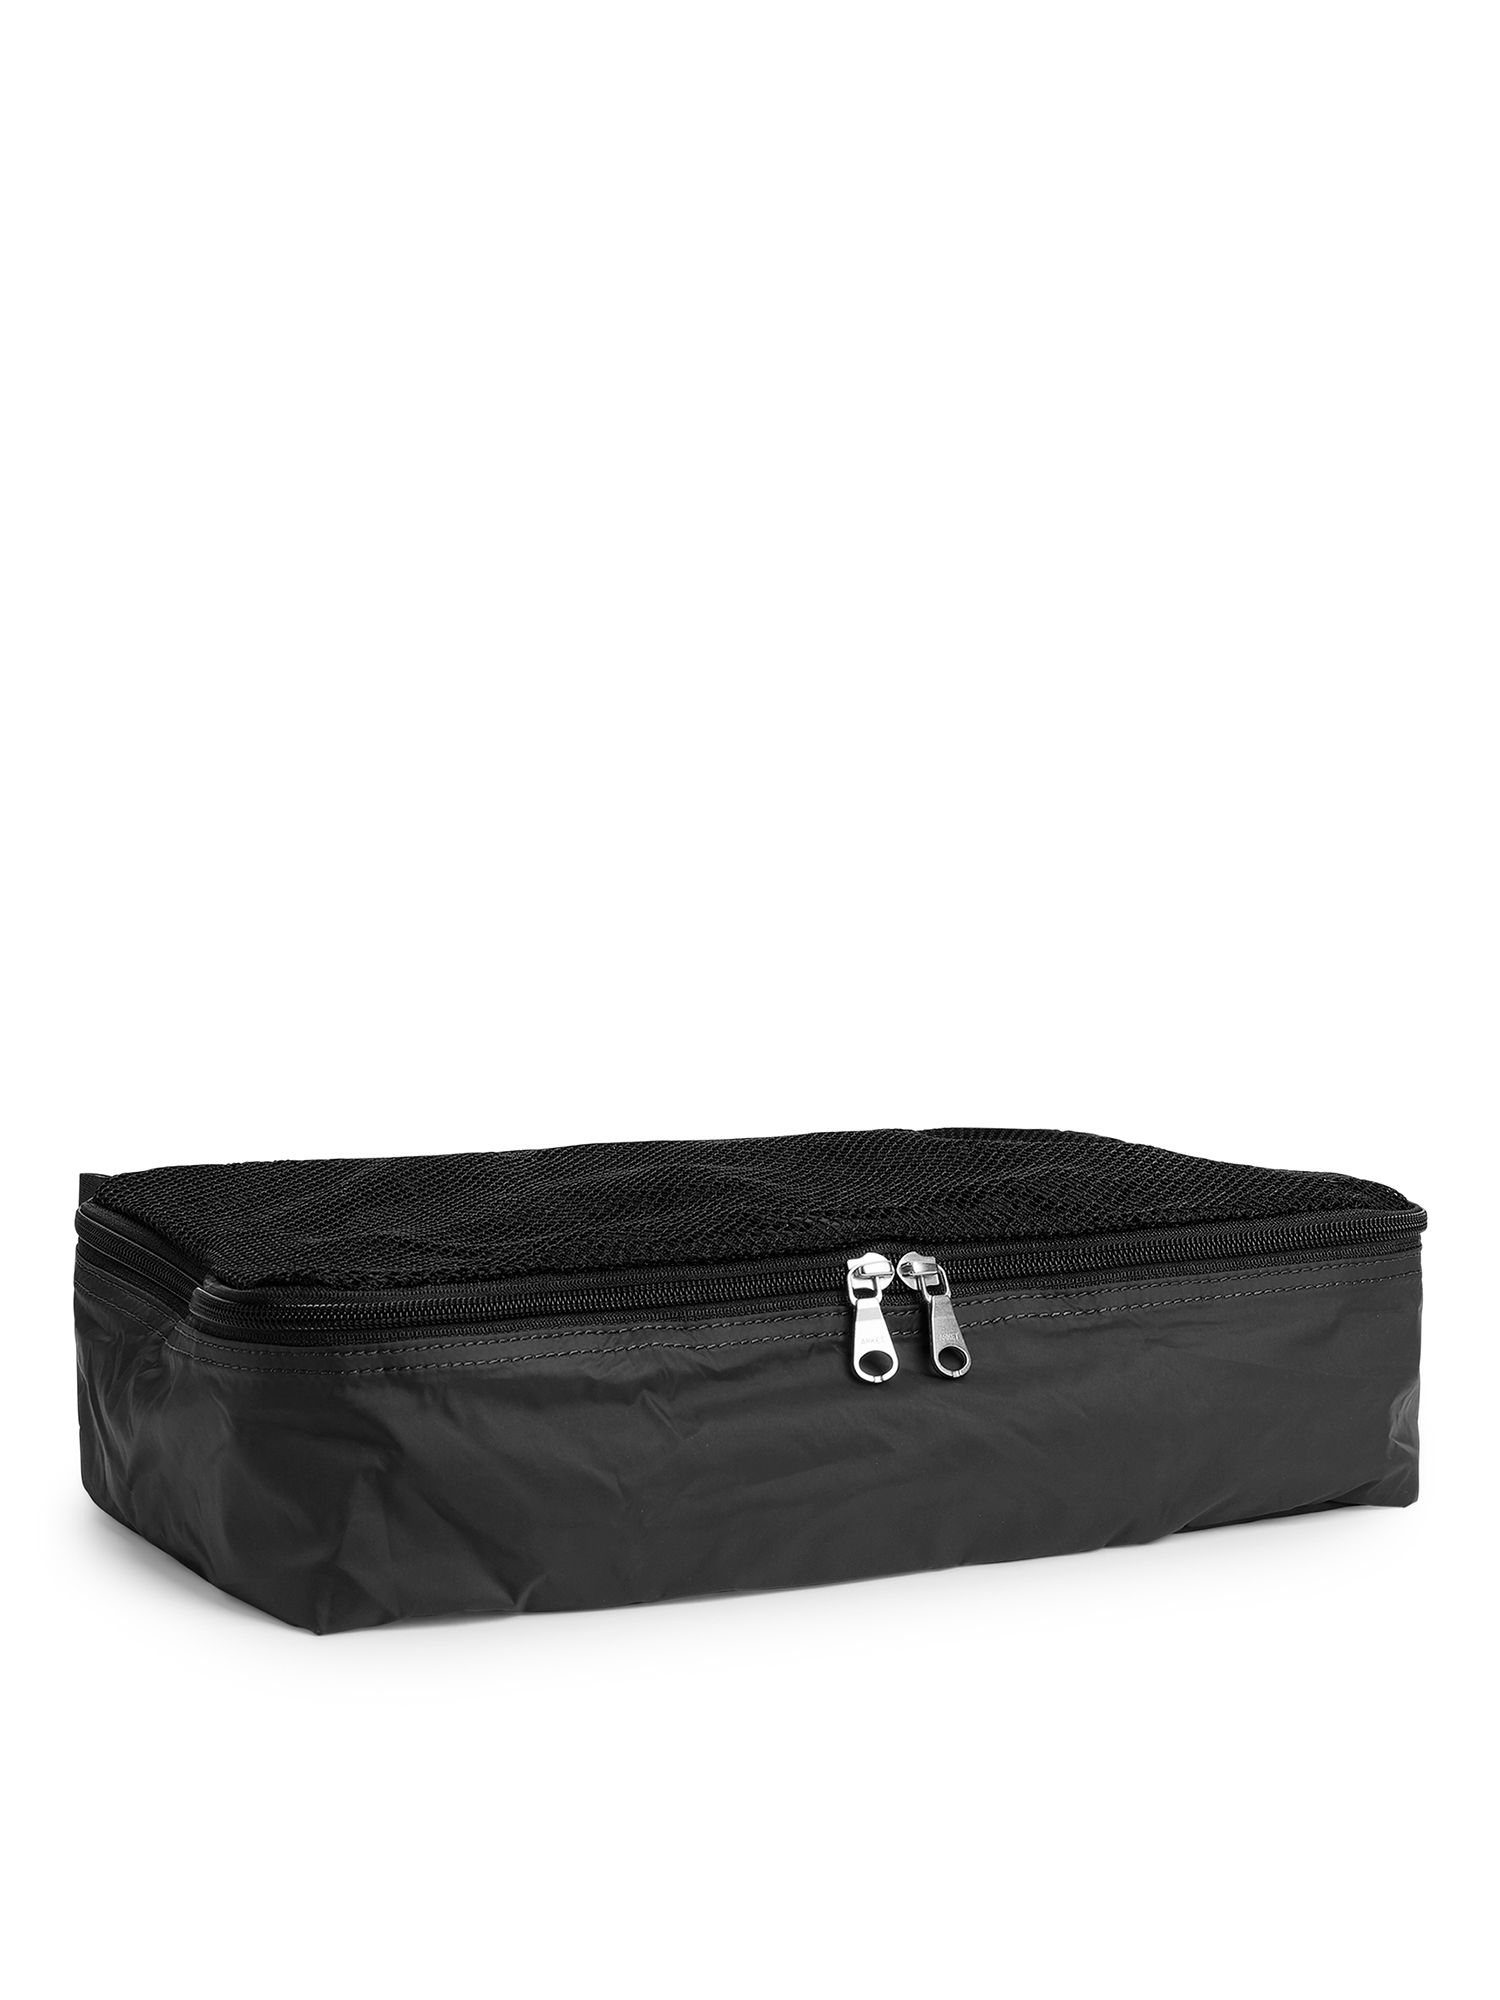 Fabric Swatch image of Arket medium garment case in black